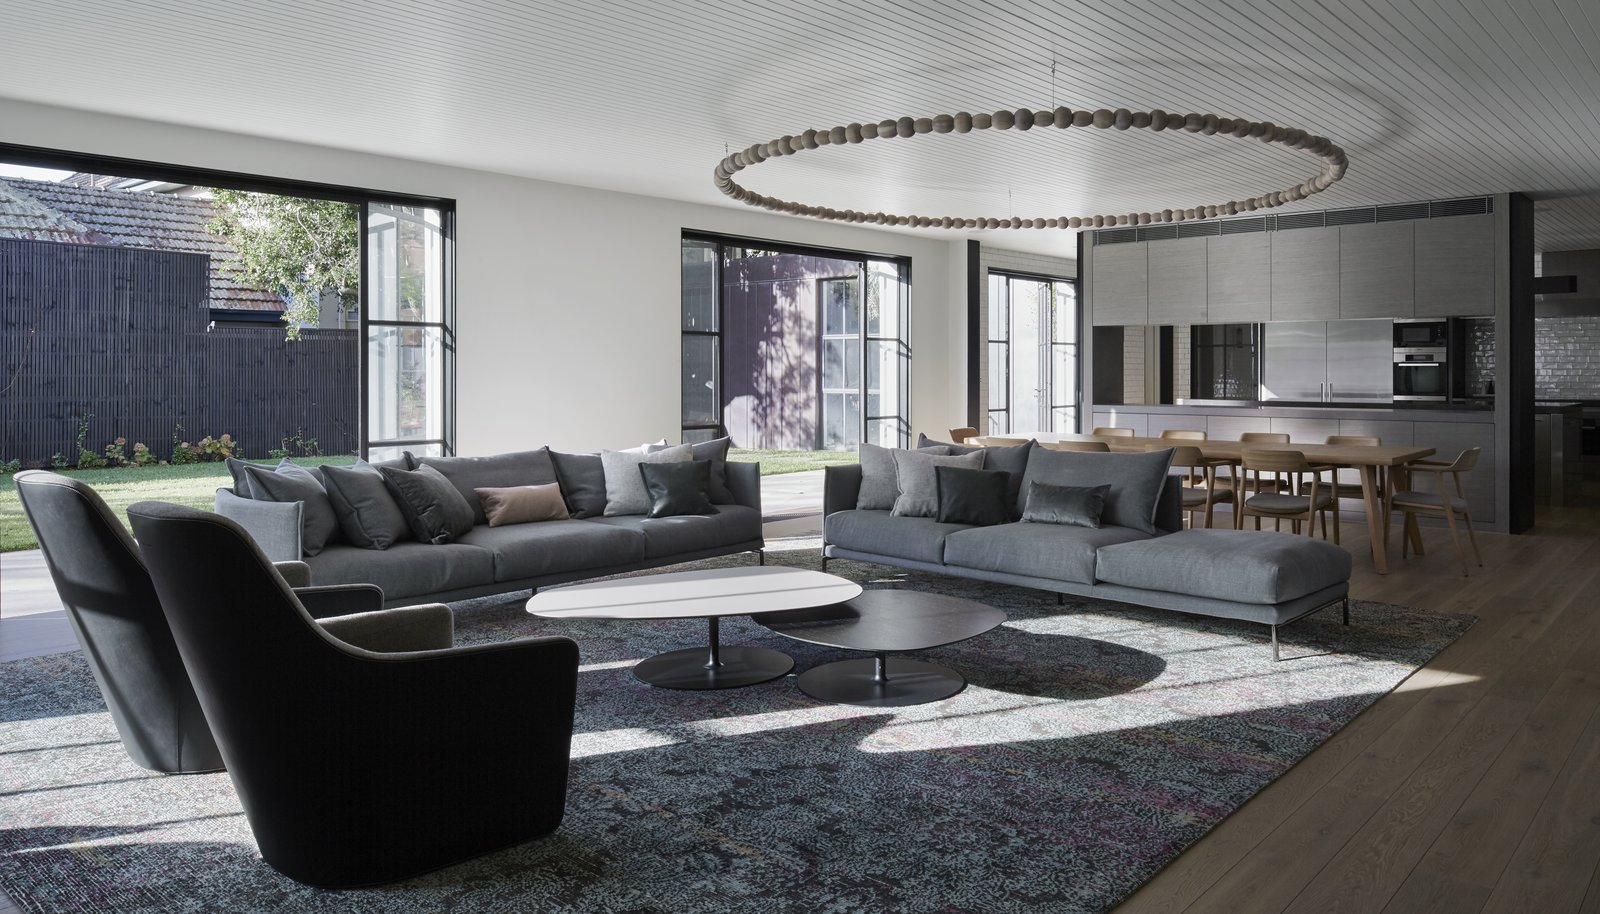 Living Room, Sofa, Coffee Tables, Chair, Medium Hardwood Floor, Rug Floor, and Ceiling Lighting  Photo 8 of 11 in See How Sliding-Glass Pavilions Transformed a Renovated Melbourne Home